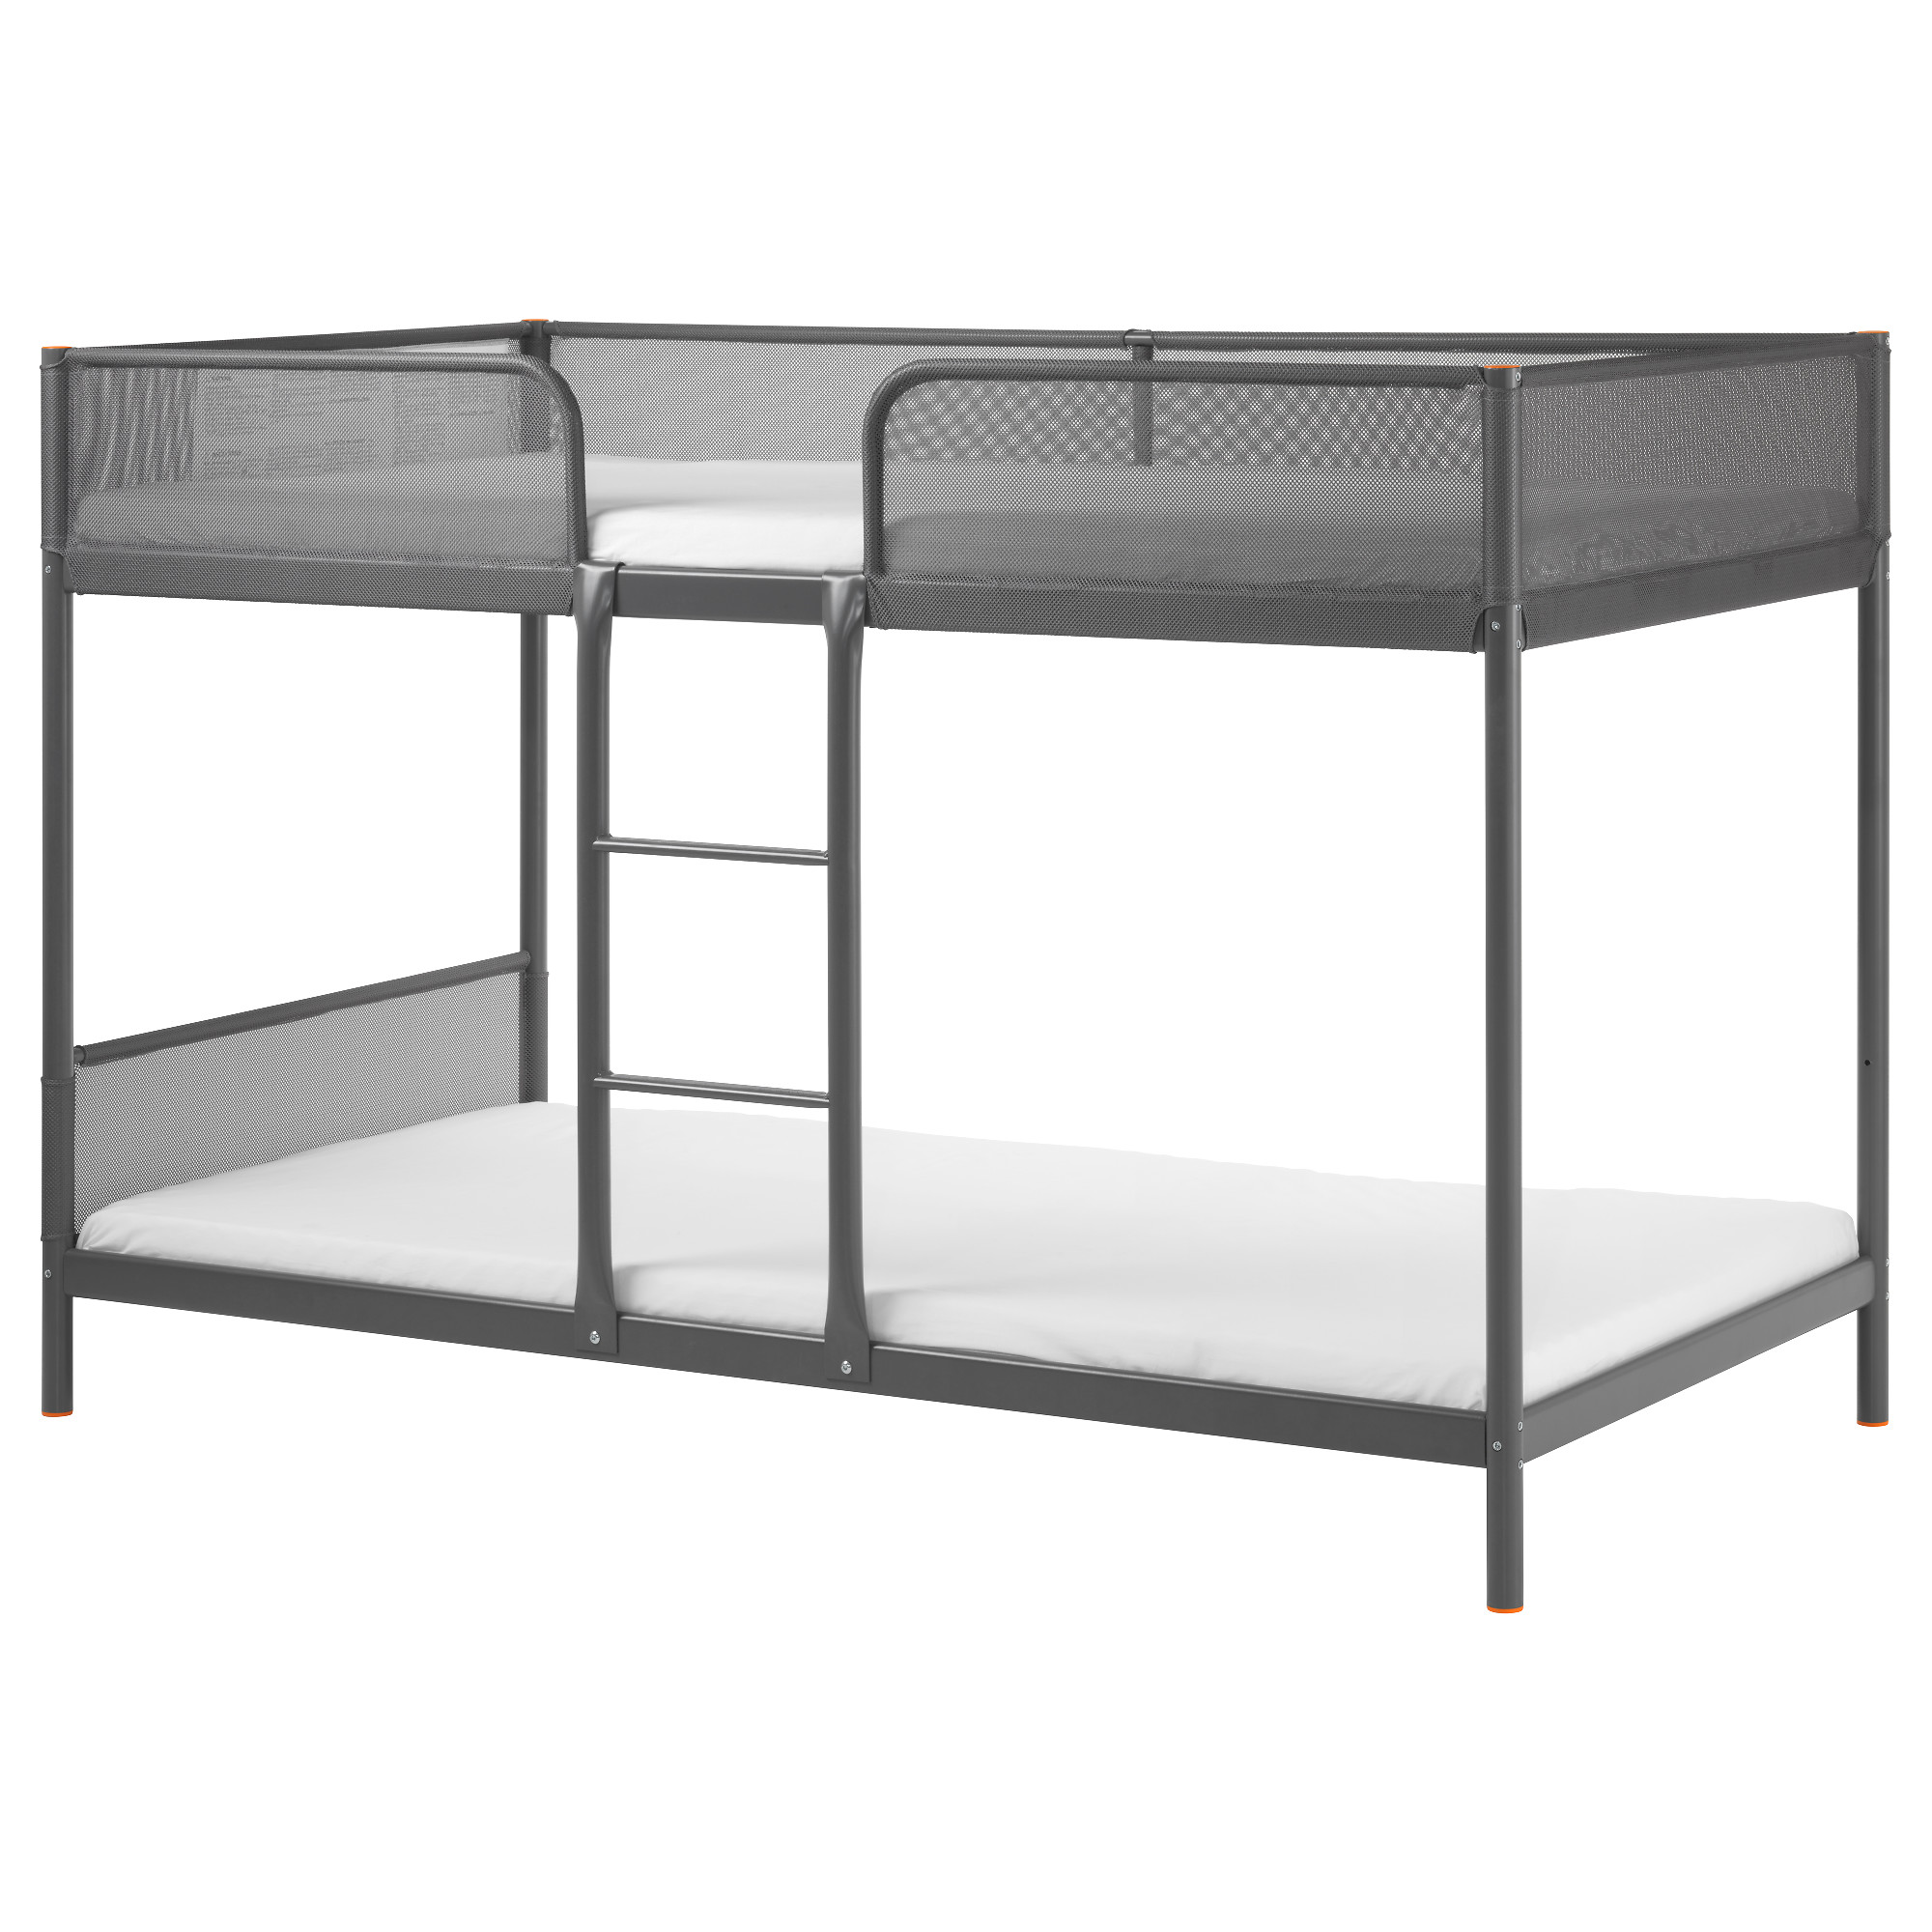 TUFFING Bunk bed frame IKEA